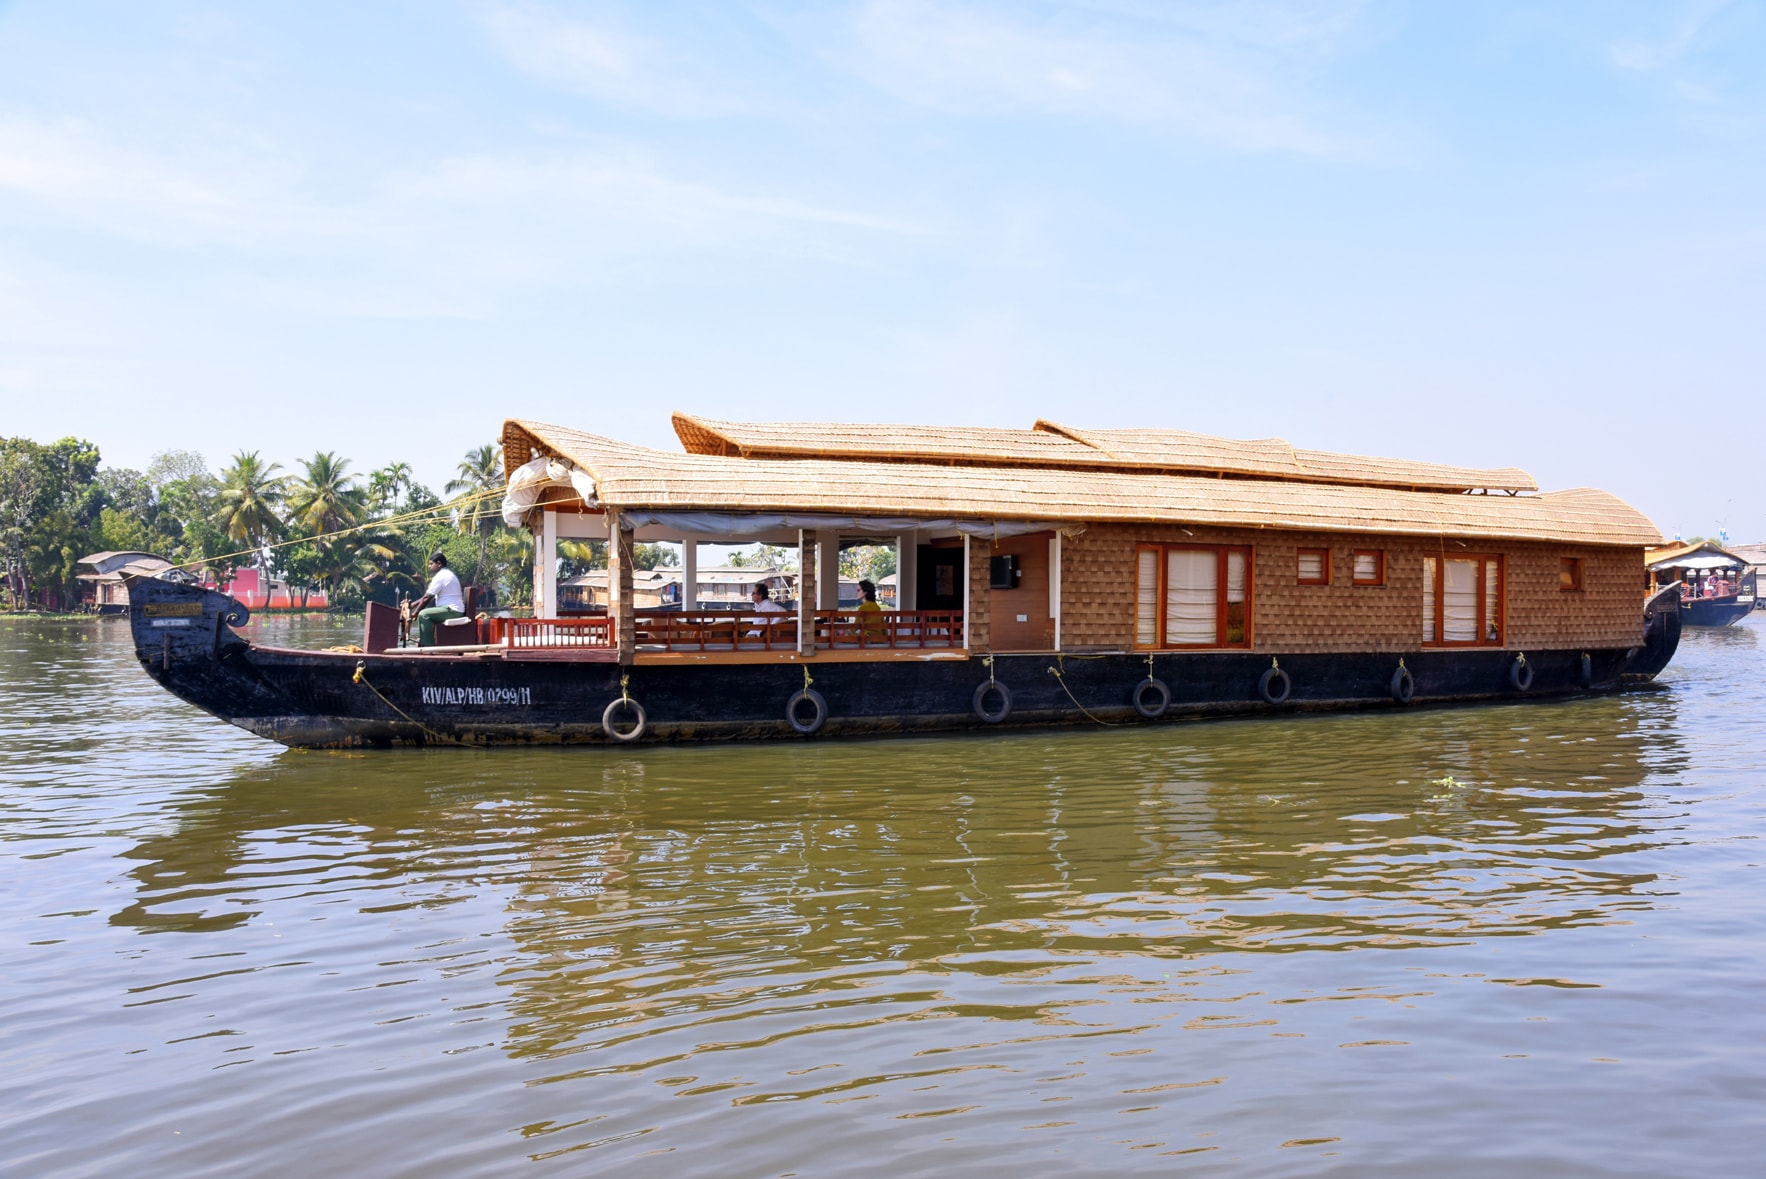 Paddle - 29 (2 bedroom) - Paddle Houseboats